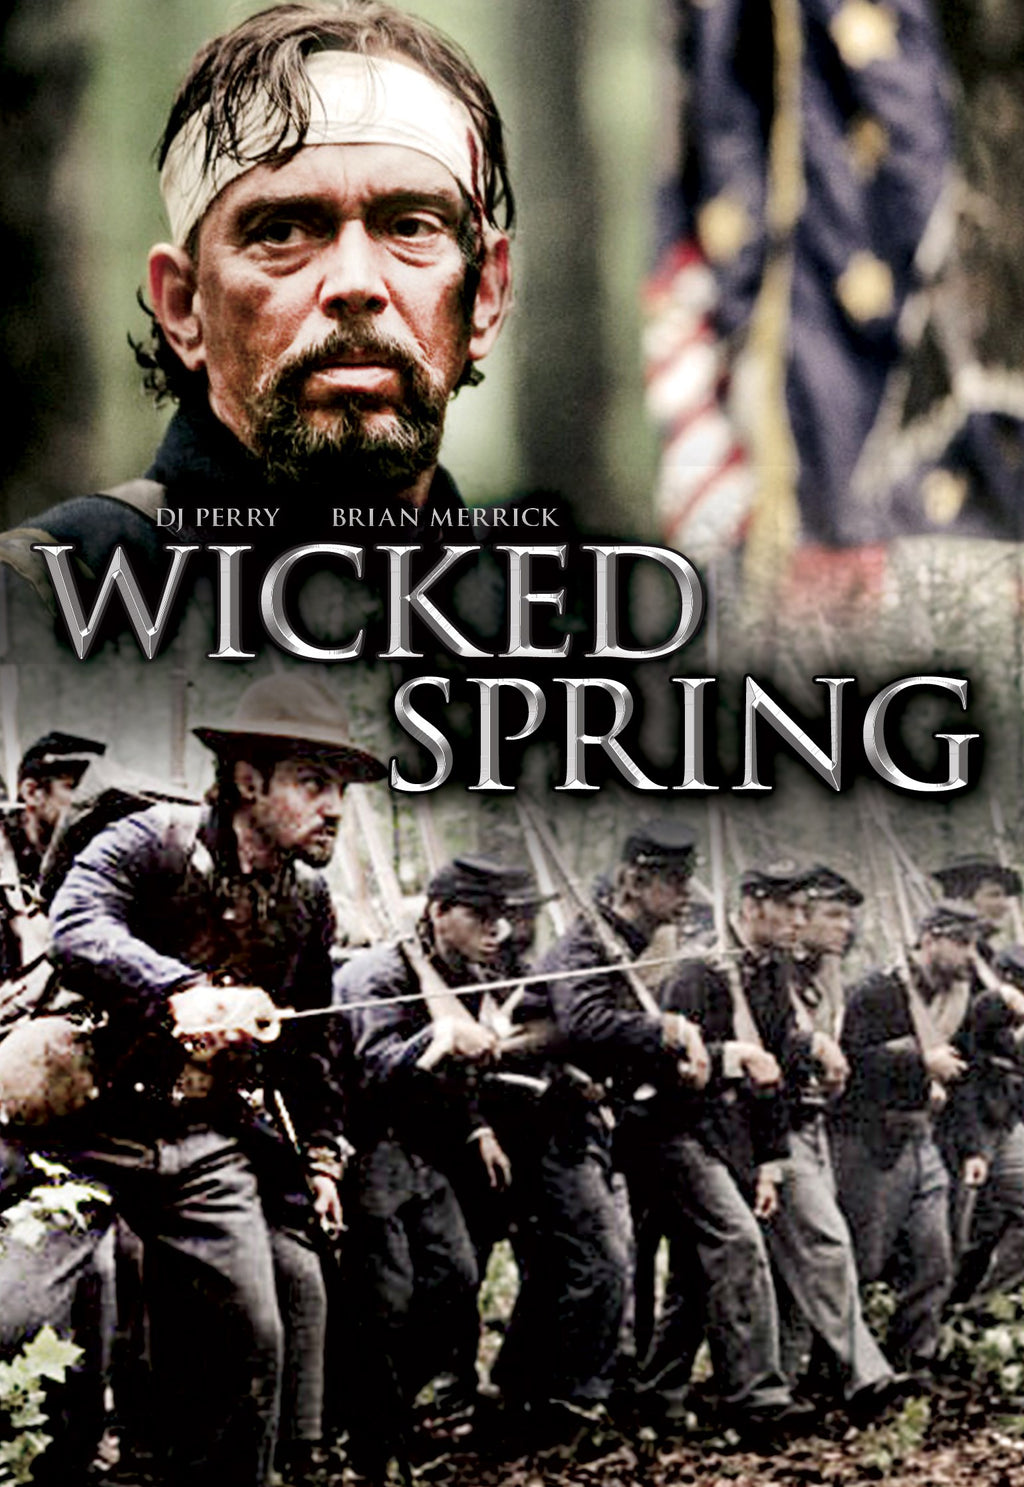 DVD-Wicked Spring